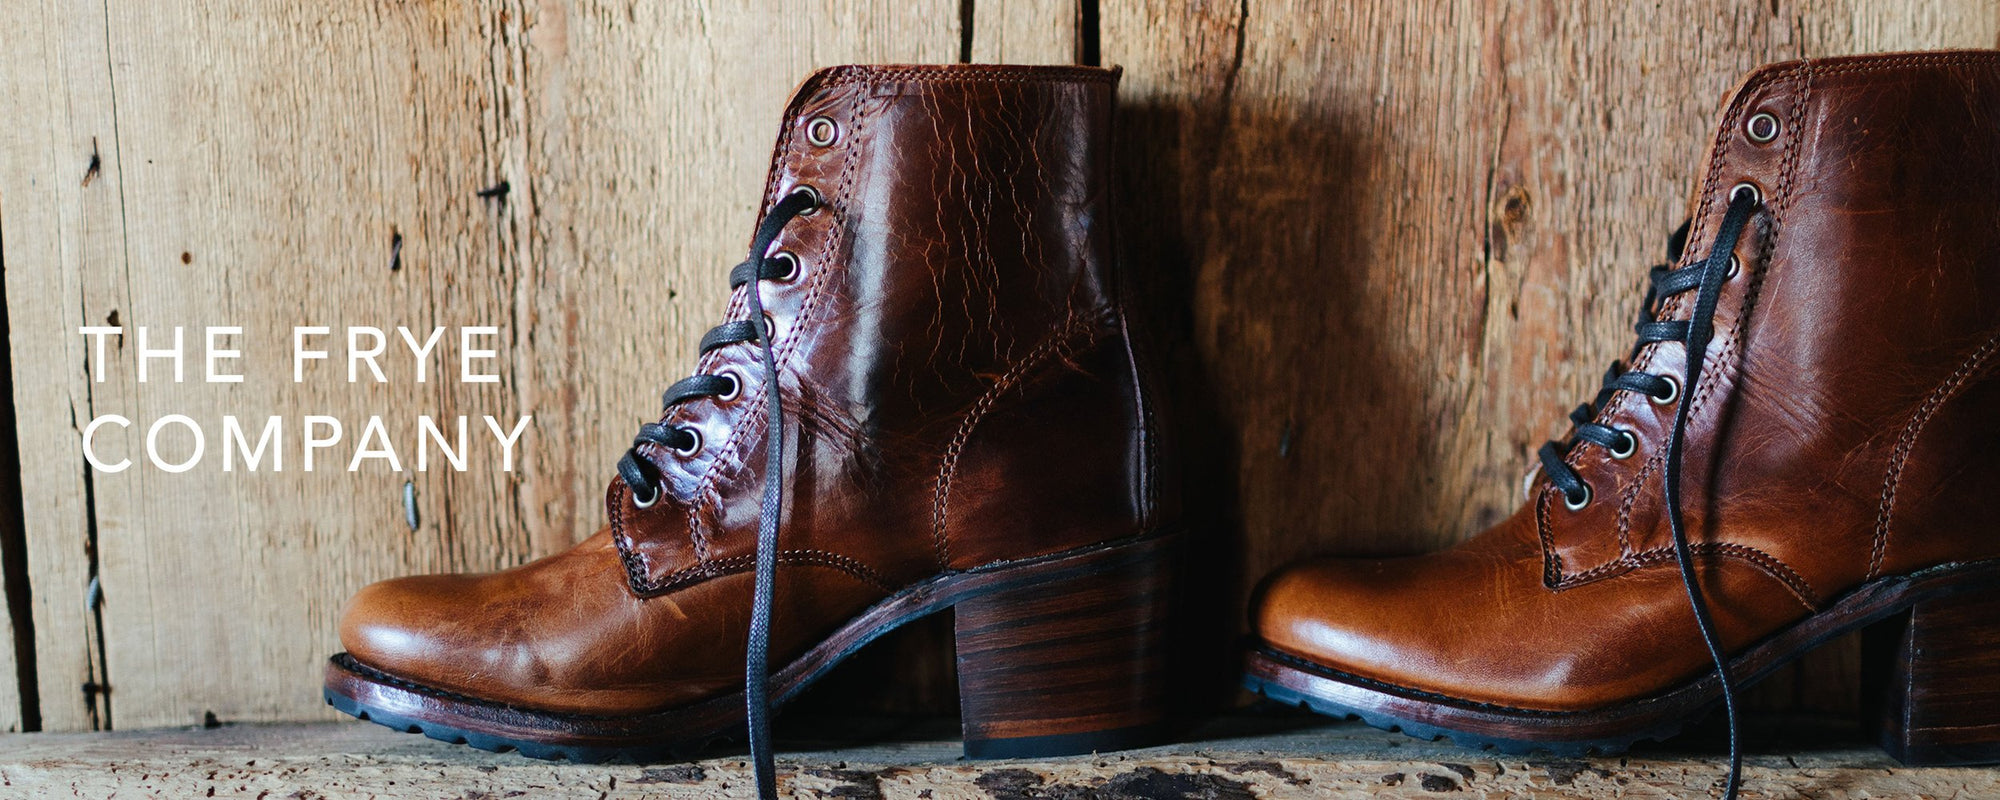 The Frye Company Boots